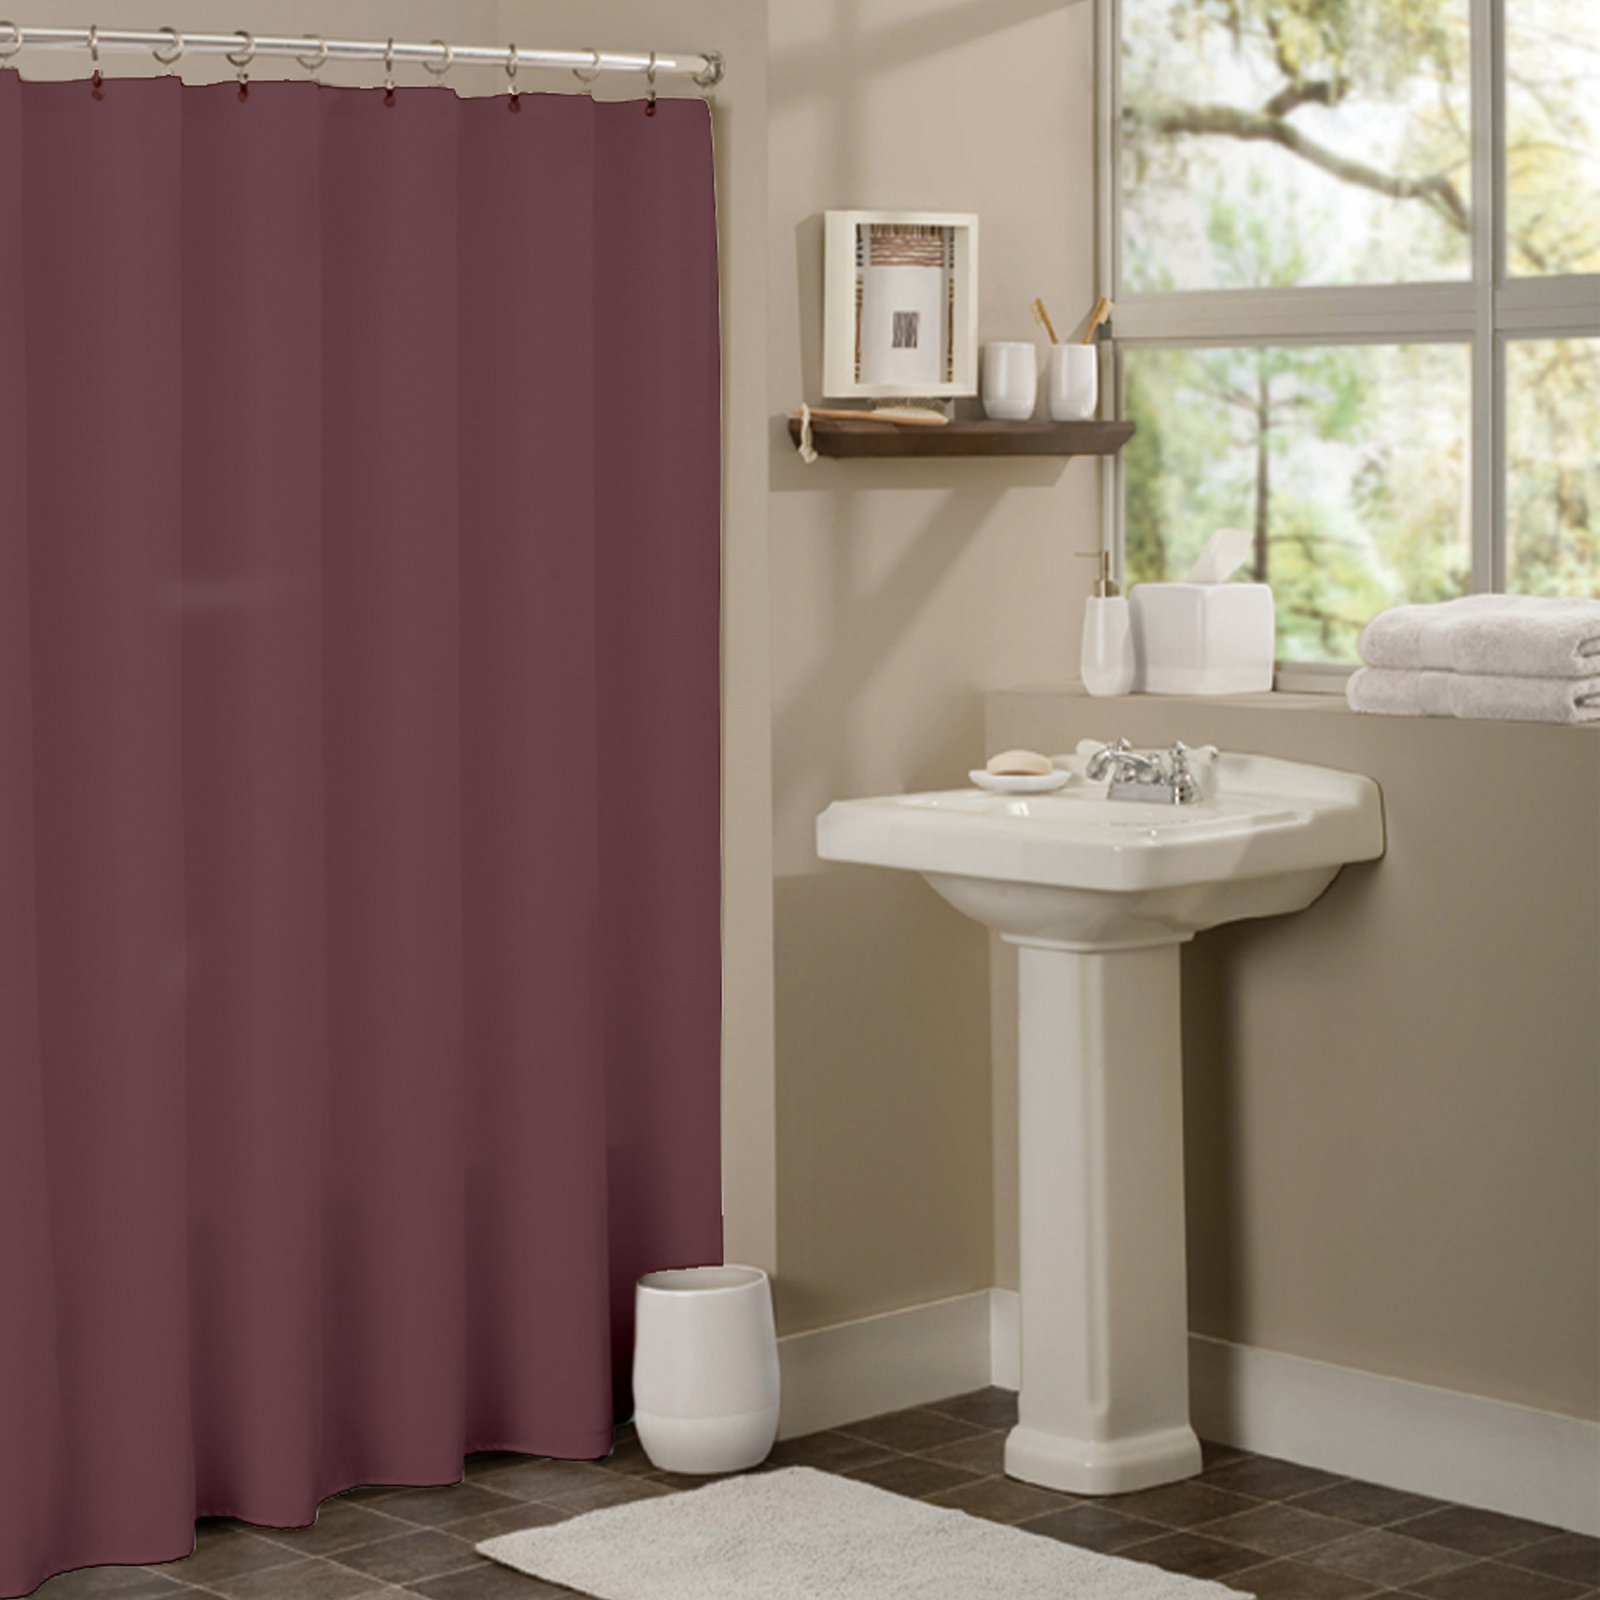 Sweet Home Collection Anti Mildew Vinyl Shower Curtain Liner With Metal Grommets